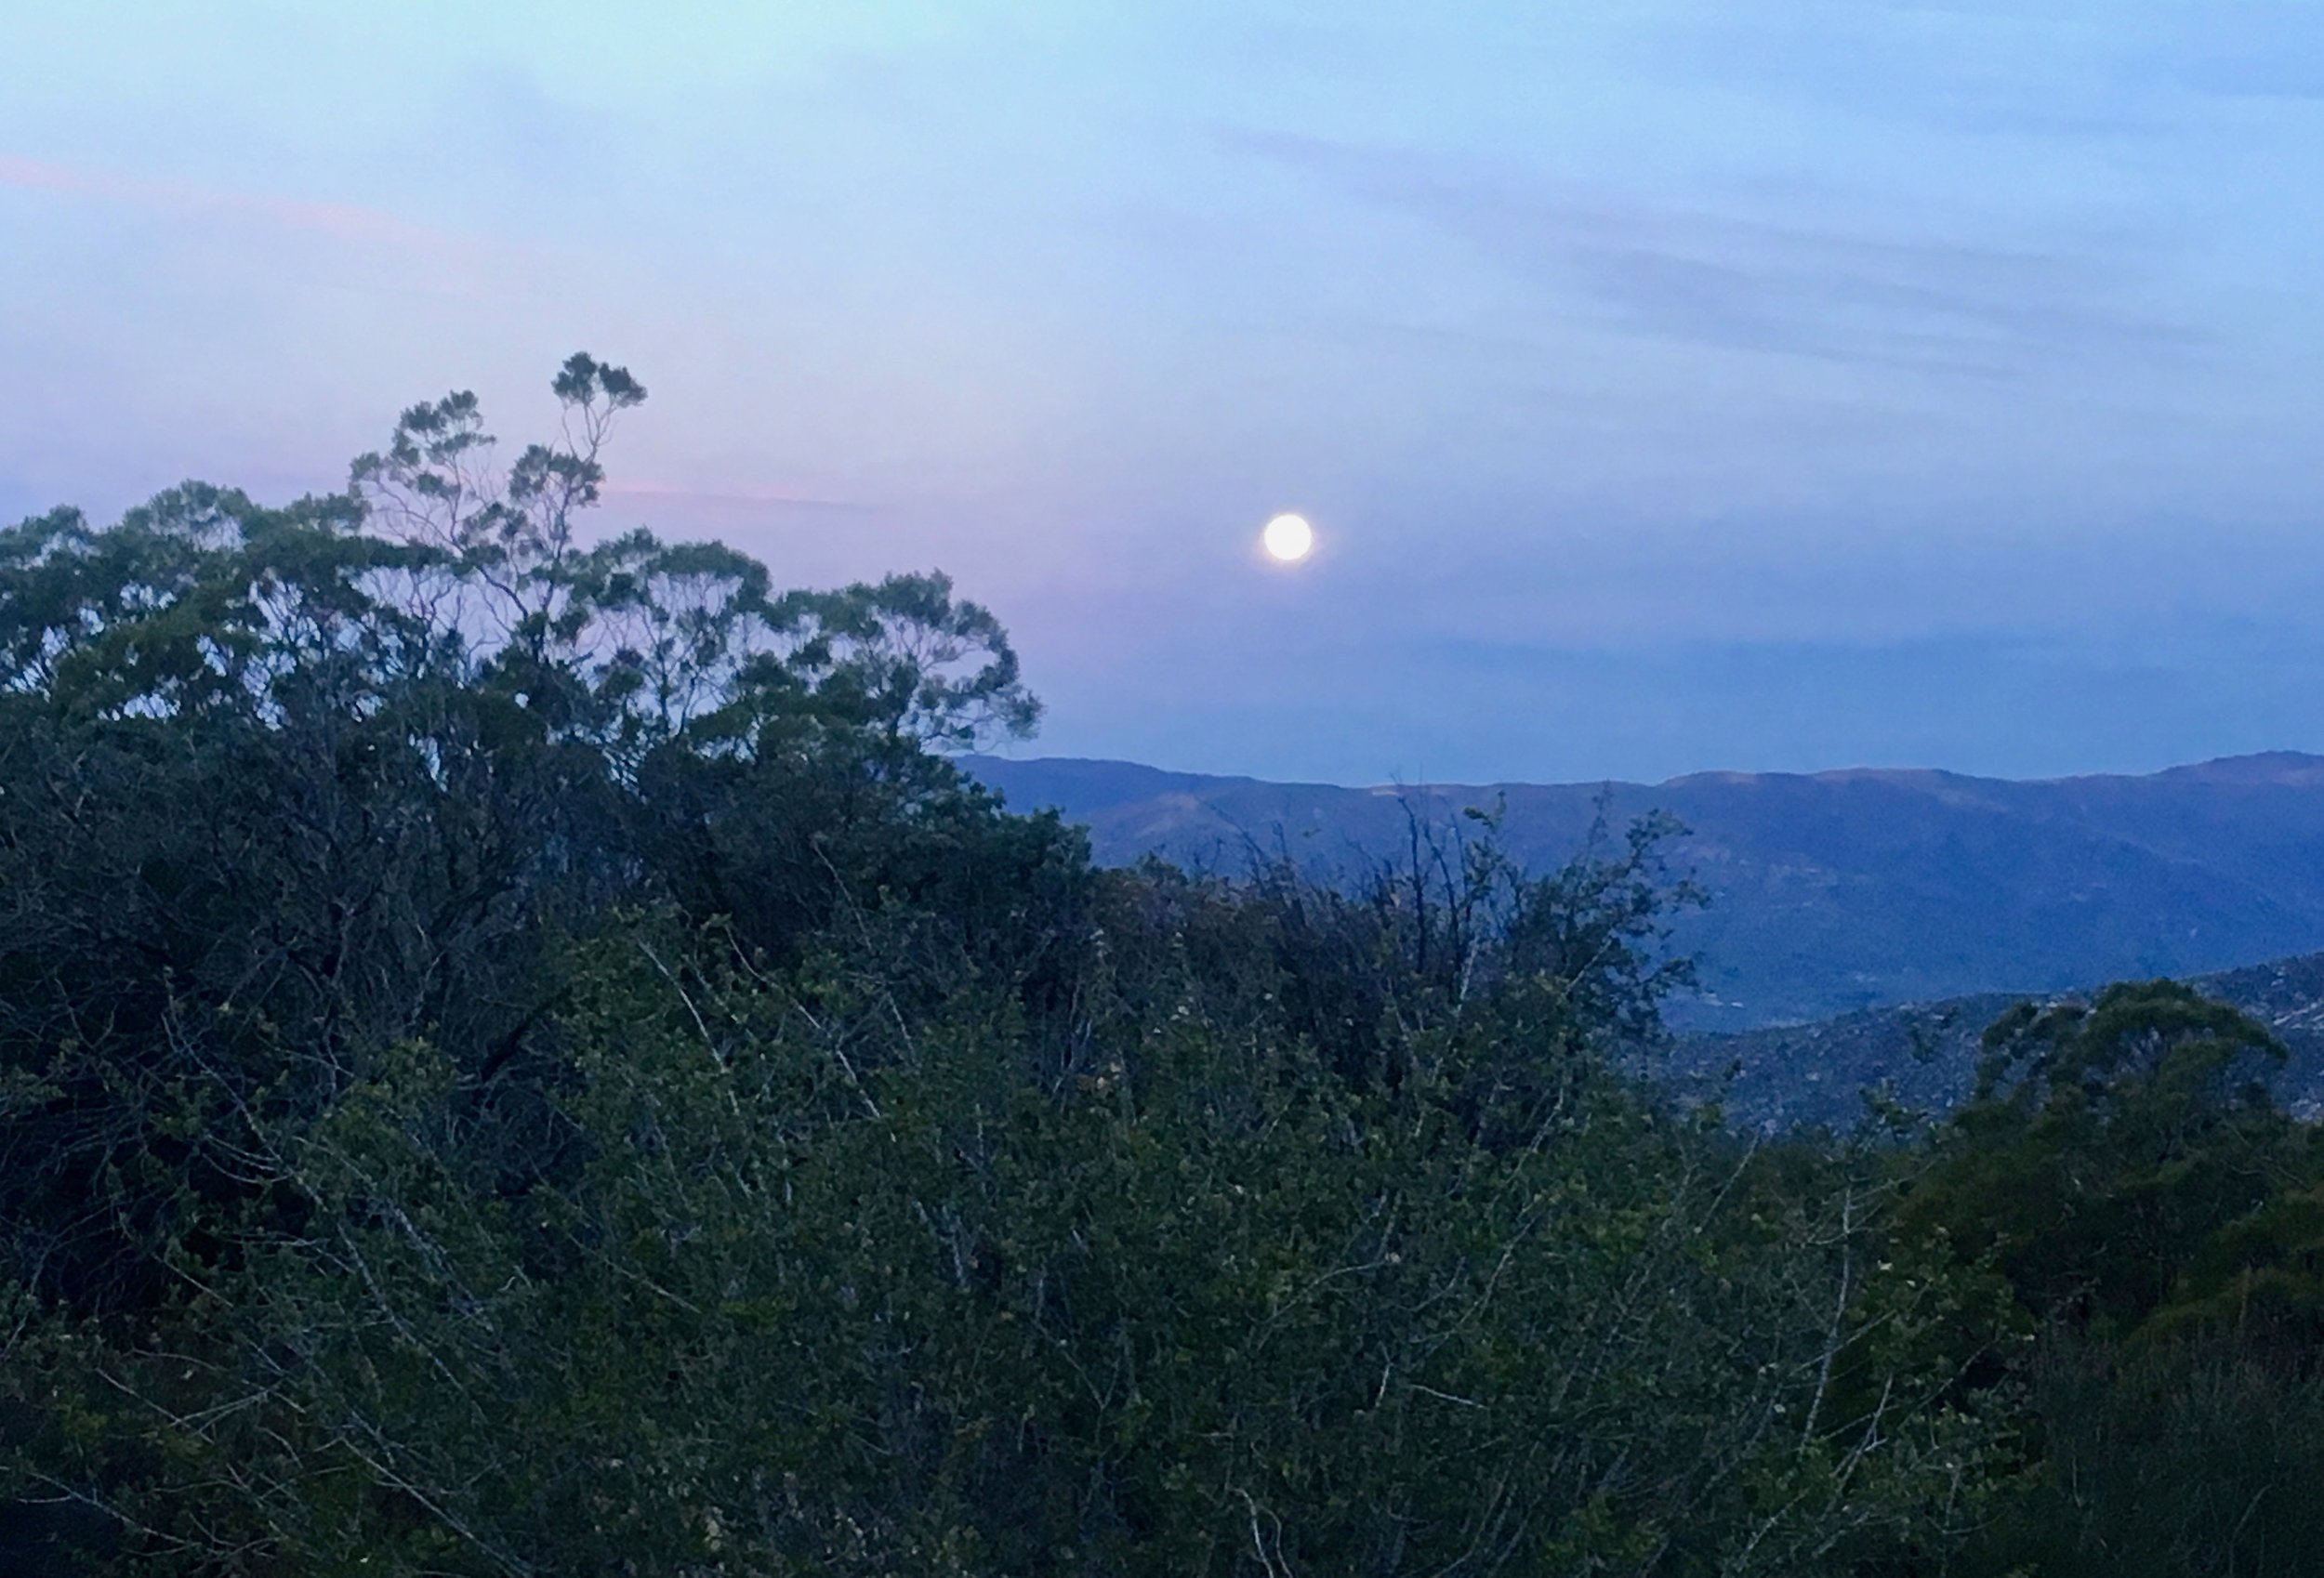 There was almost enough moonlight to hike without our headlamps.